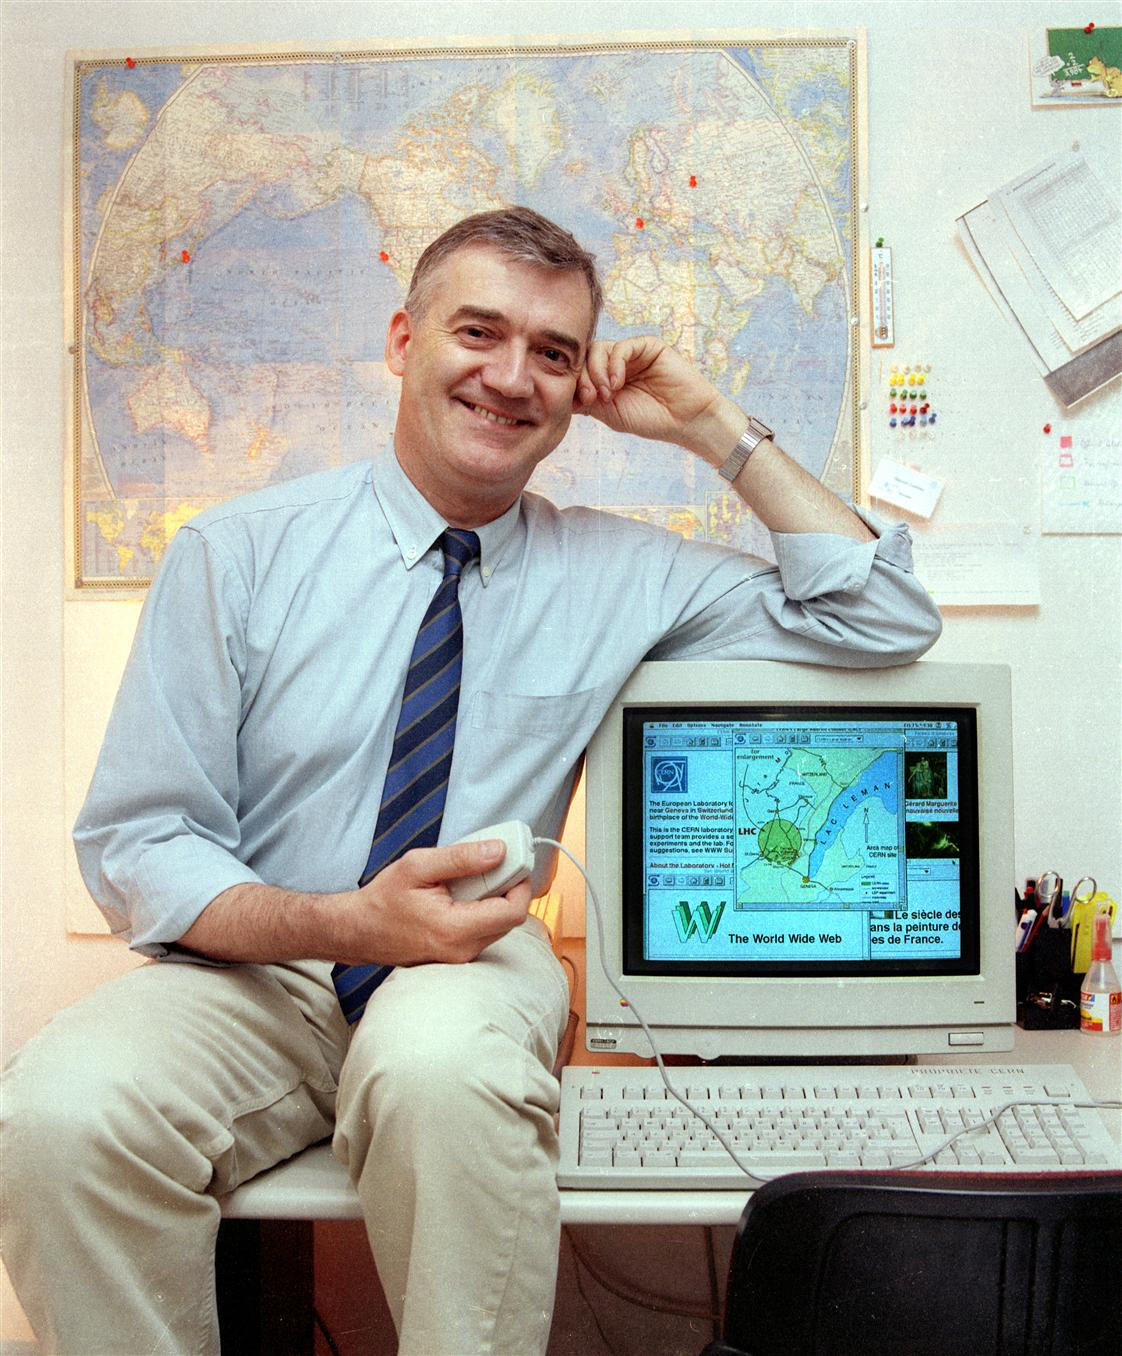 CERN systems engineer Robert Cailliau